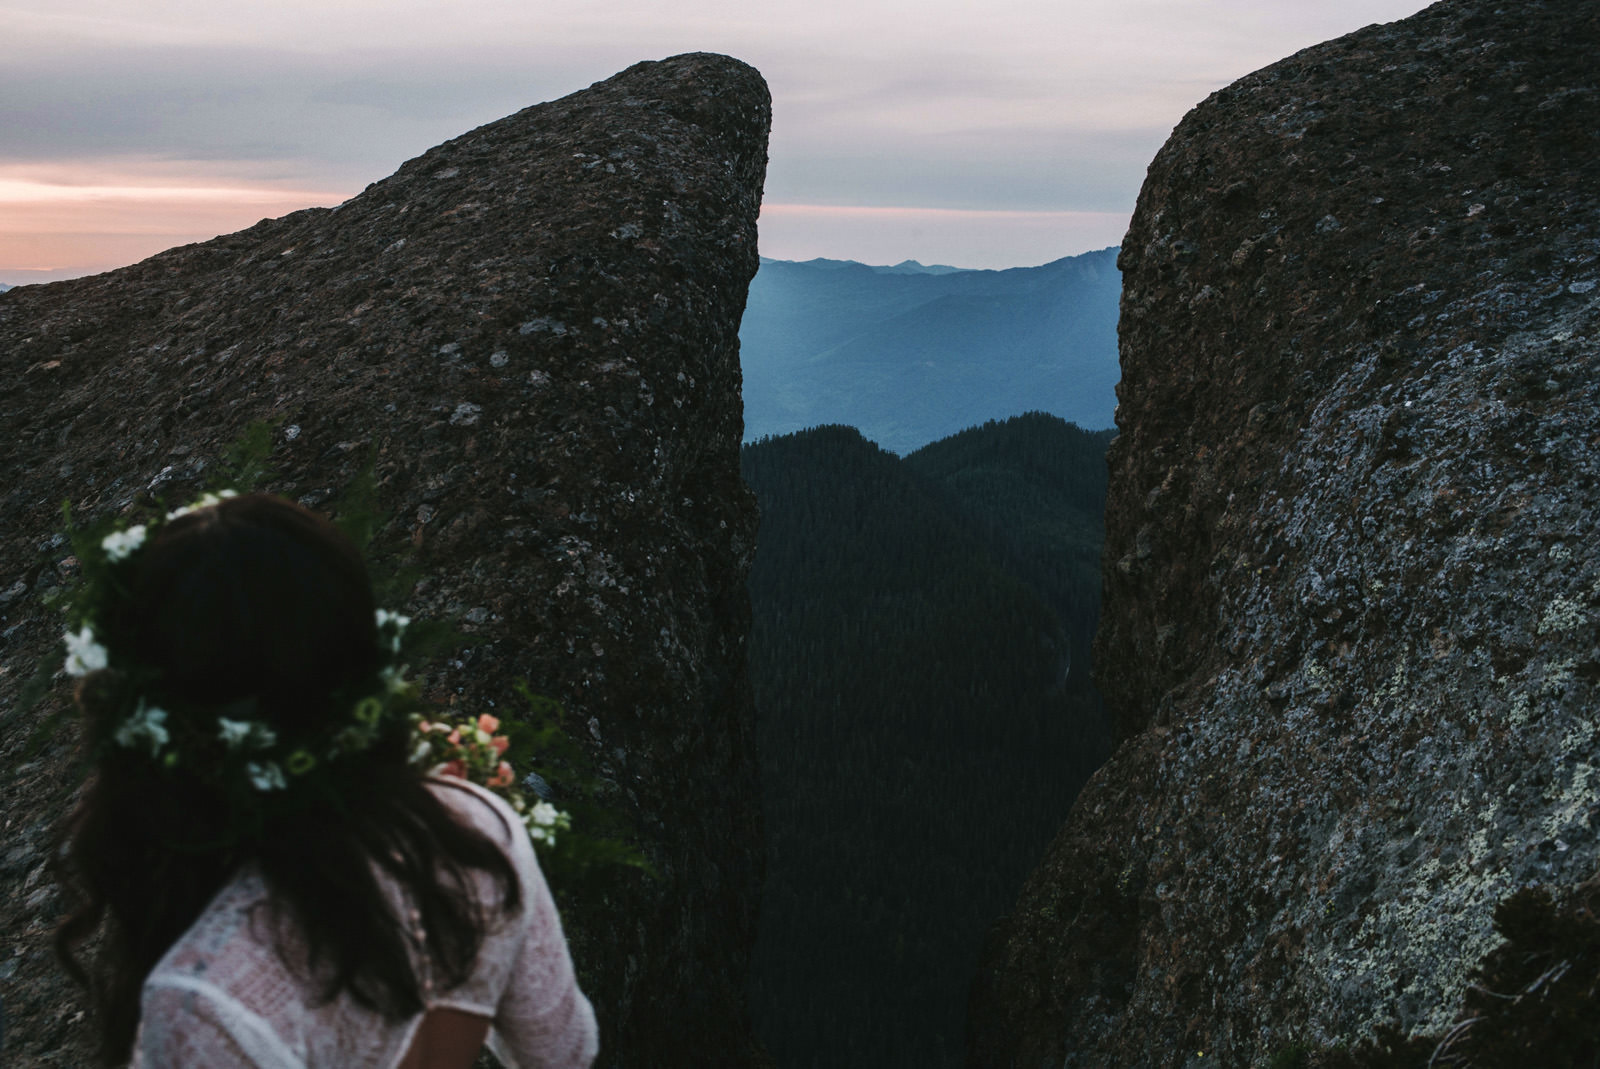 katelynnethan-blog-36 MOUNT RAINIER LOOKOUT ELOPEMENT